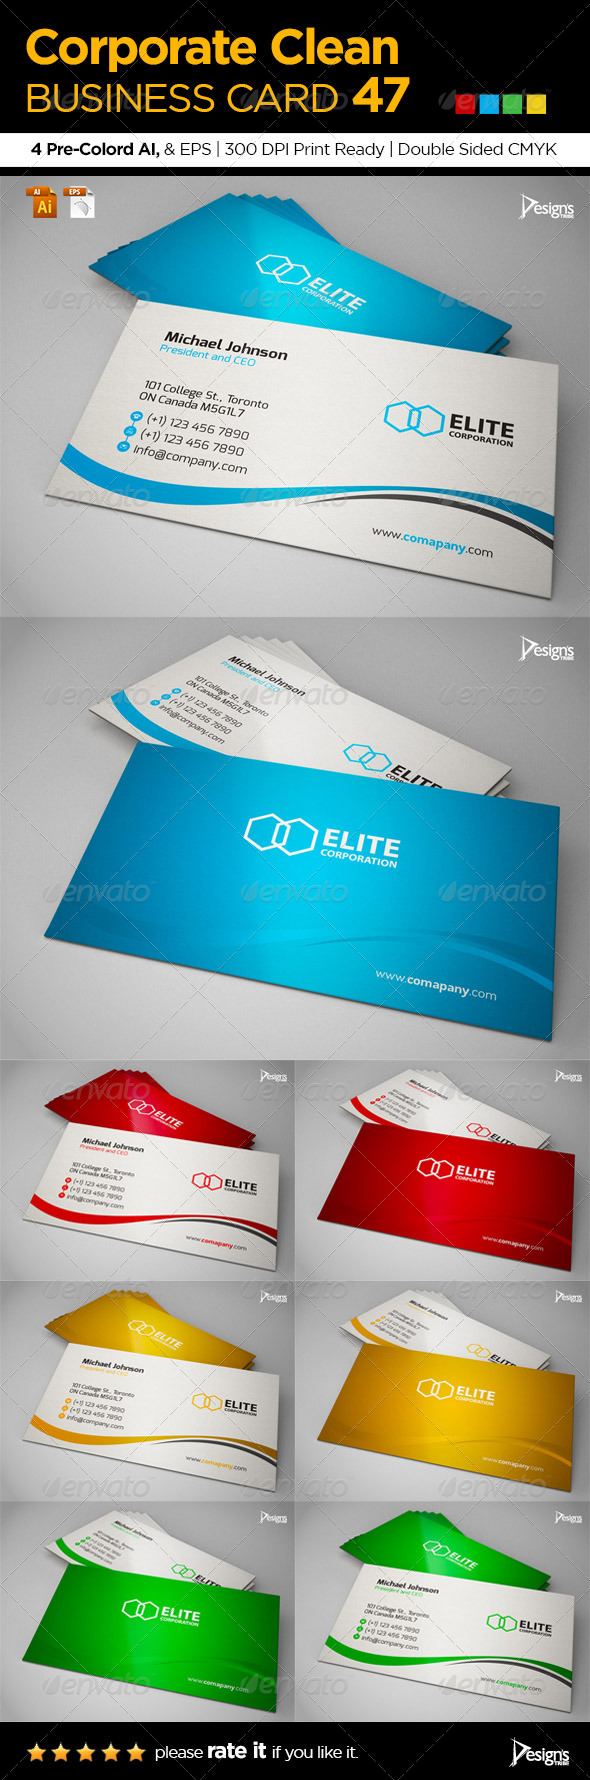 Corporate Clean Business Card 47 - Business Cards Print Templates